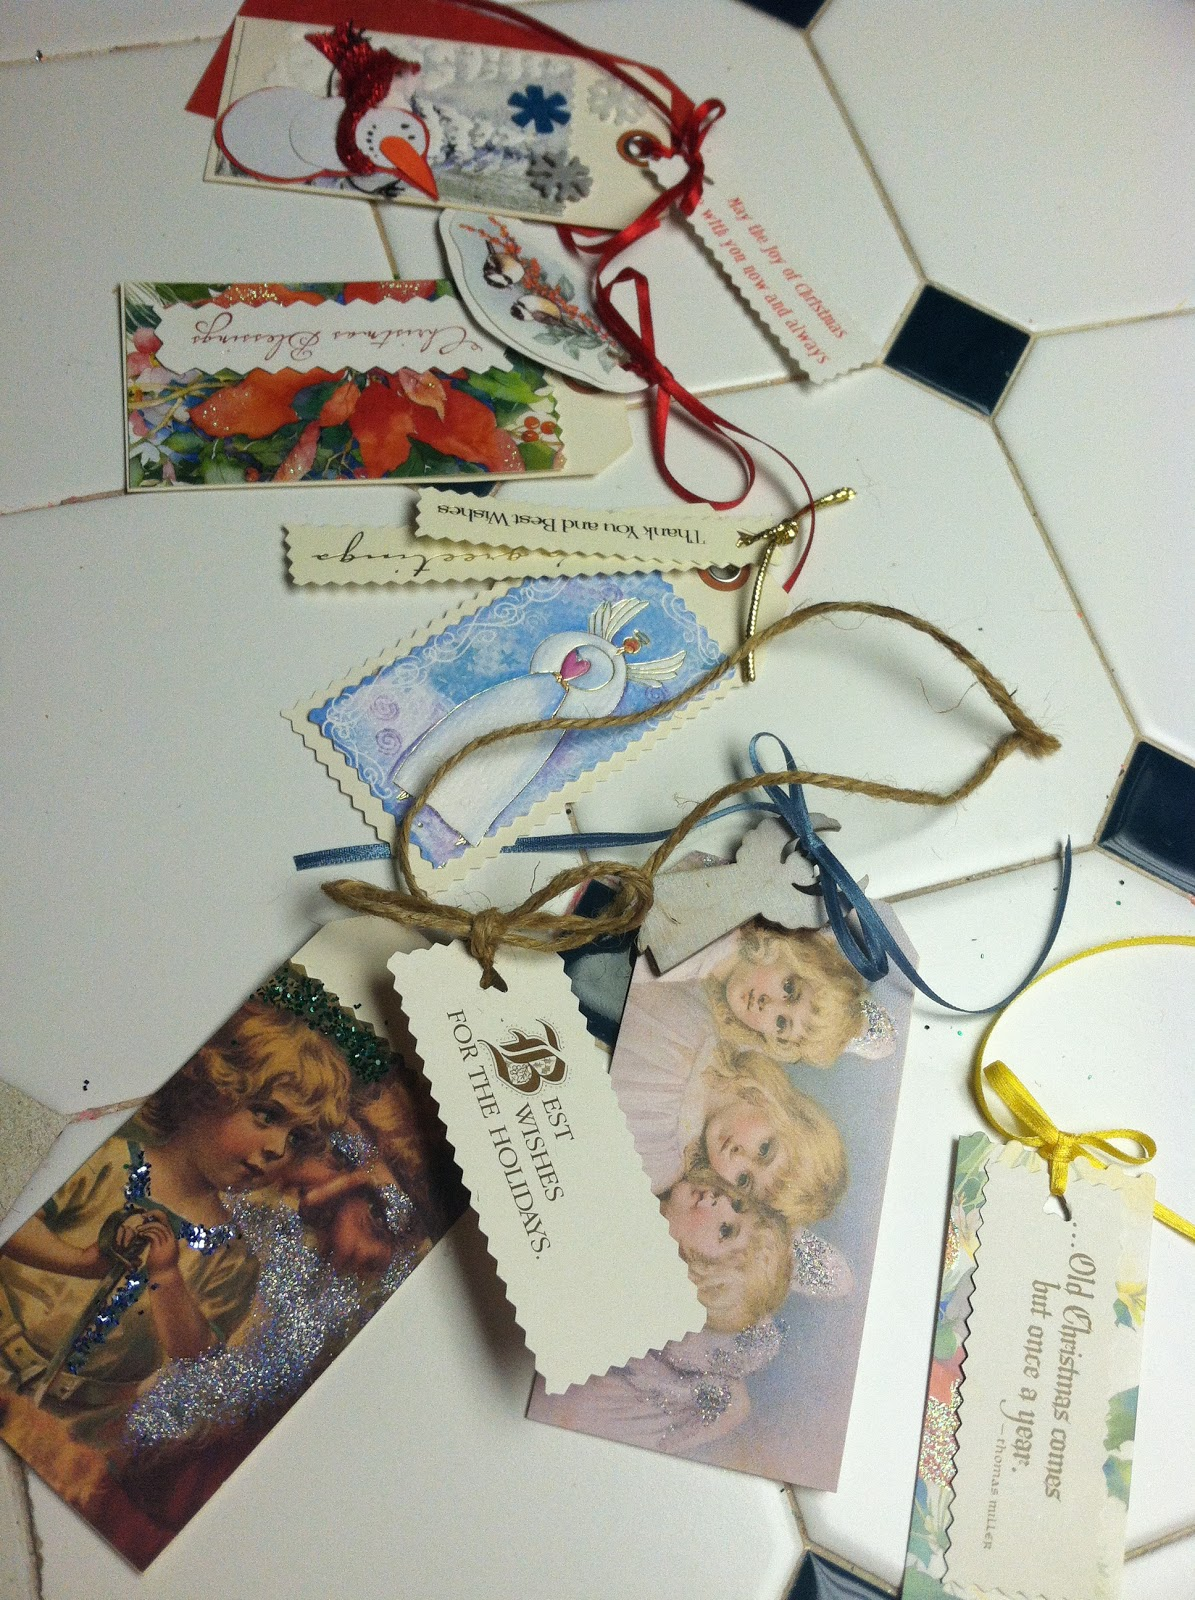 Make Christmas Gift Tags From Recycled Greeting Cards | Learn the ...